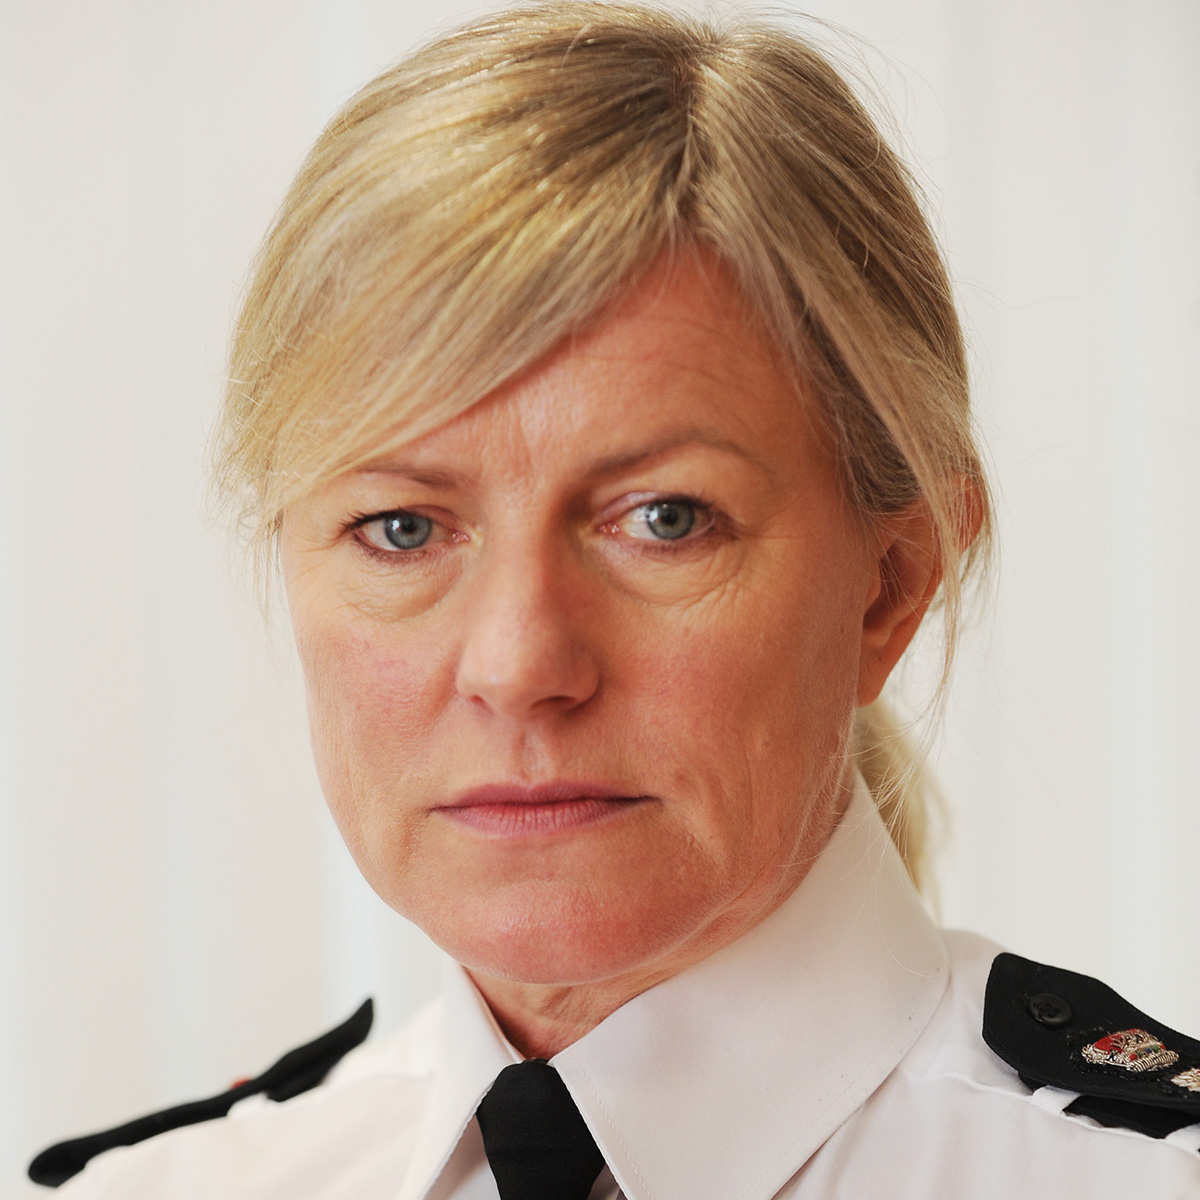 Thames Valley Police Chief Constable Sara Thornton